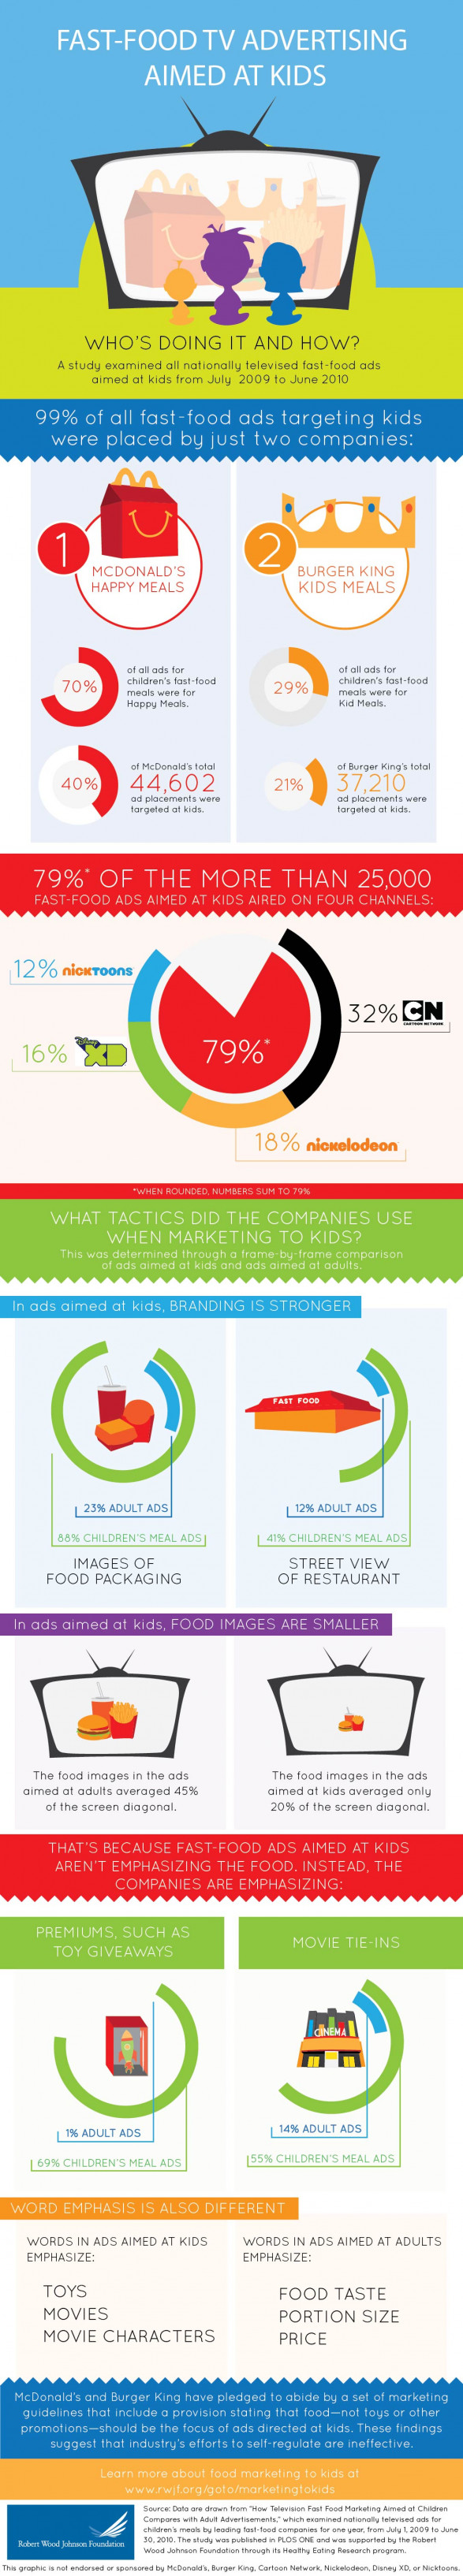 Fast Food Industry Infographic